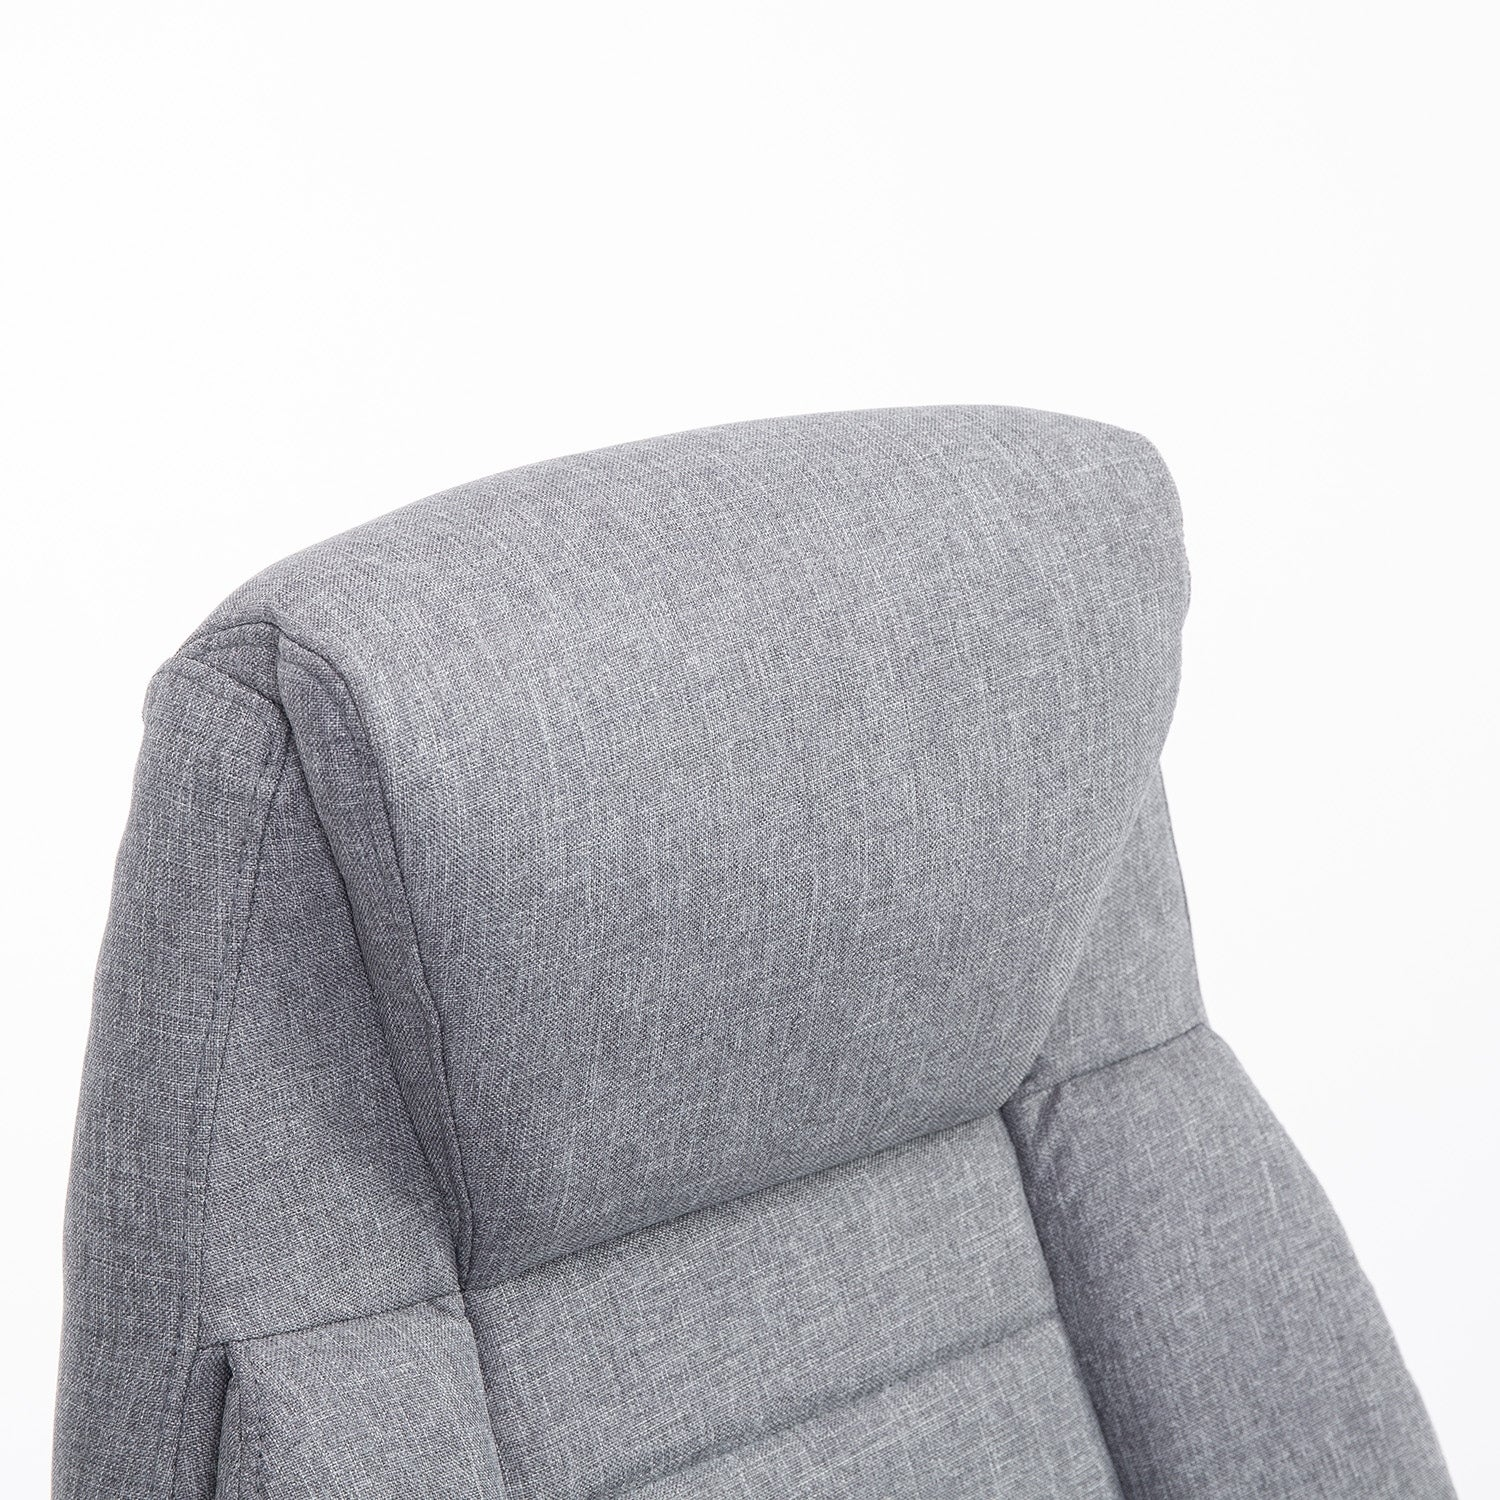 HomCom High Back Fabric Executive Office Chair   Light Gray   Free Shipping  Today   Overstock   24247286